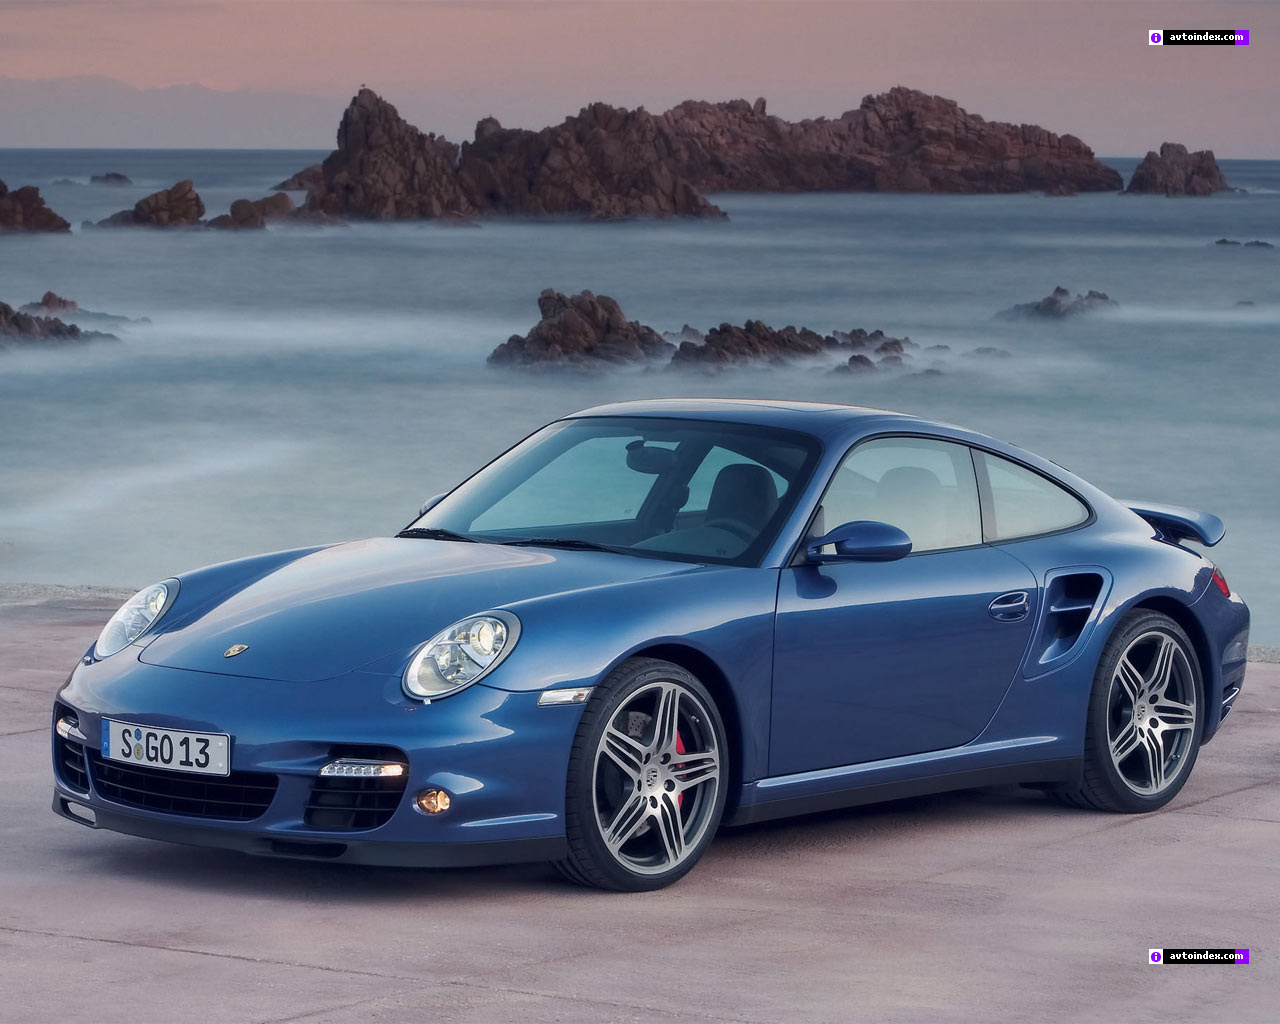 porshe 911 turbo wallpapers cool wallpapers. Black Bedroom Furniture Sets. Home Design Ideas